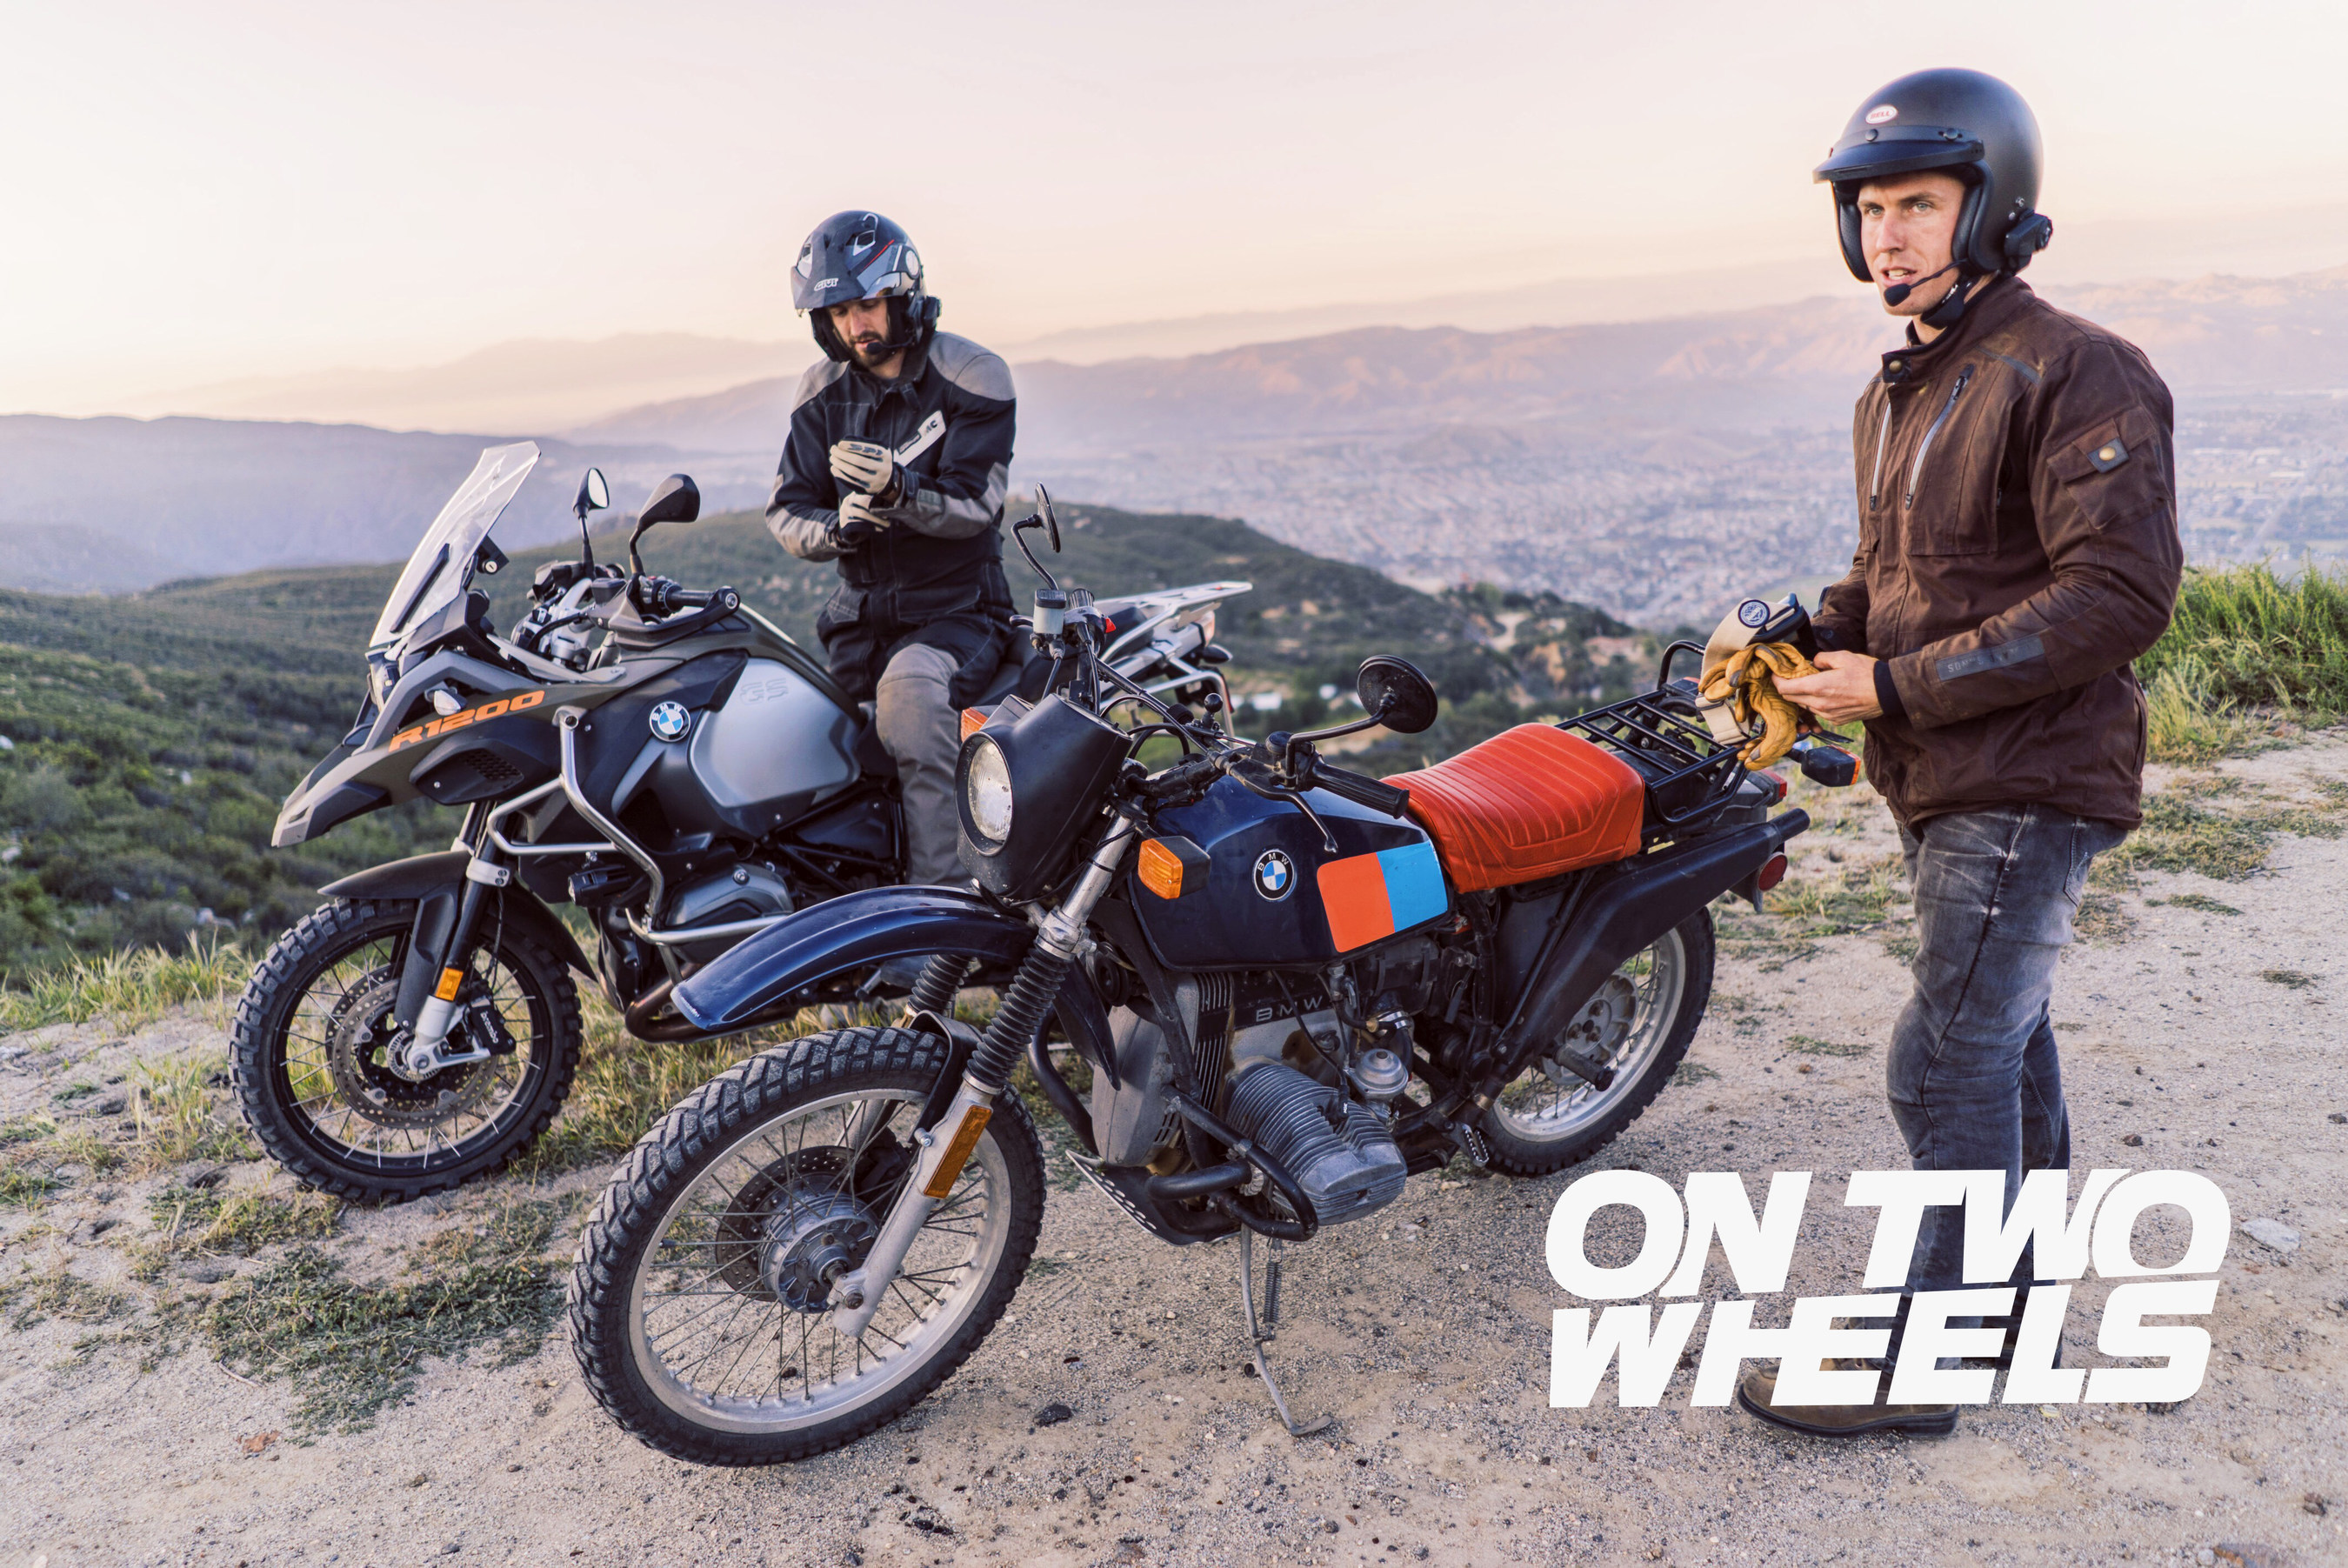 Motorcyclist Magazine Makes National Television Debut With Premiere of Episodic Series 'On Two Wheels'